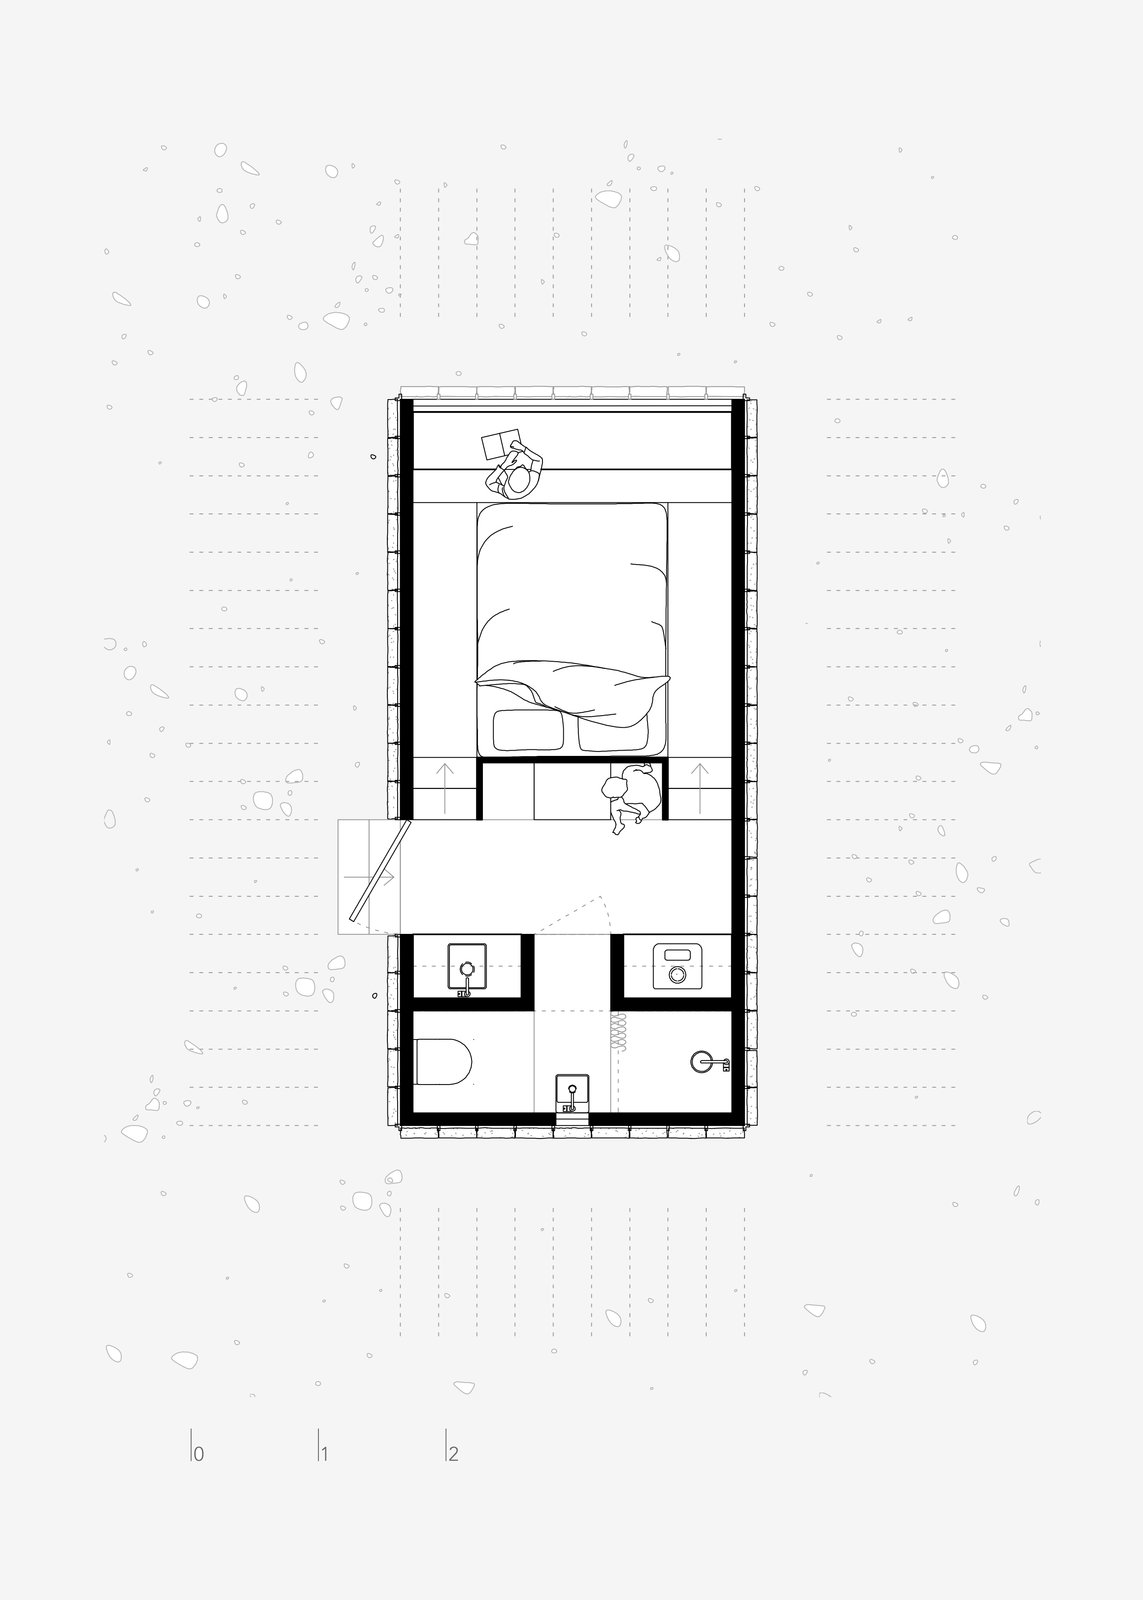 The Floor Plan of the cabin shows the innovative and efficient use of space in the compact floor plate.